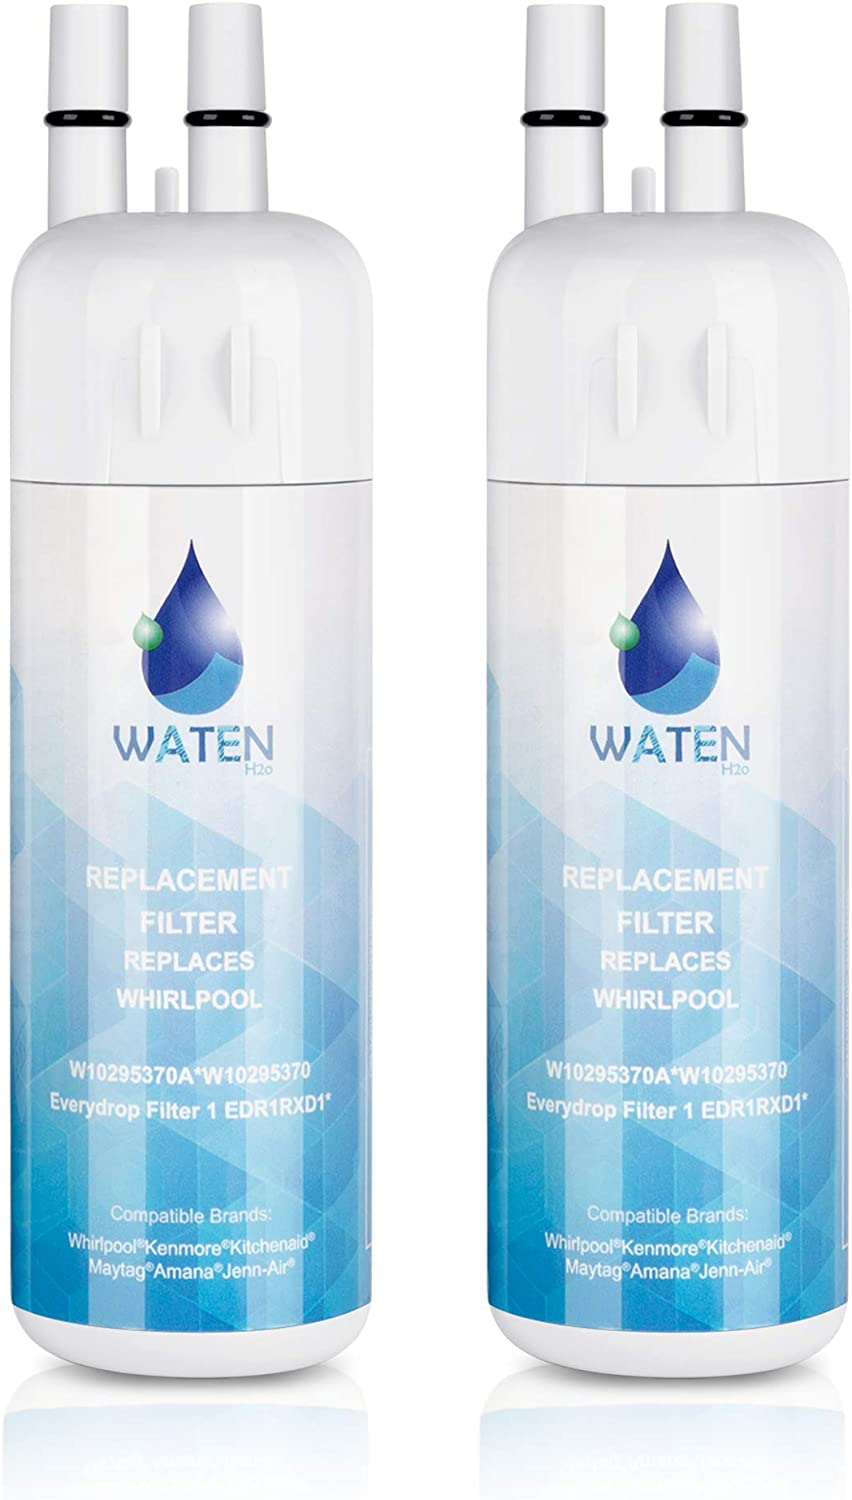 46-9930 Water Filter 2PACKS WATEN H2O W10295370a Water Filter Cap Replacement Compatible with EDR1RXD1 W10295370a Filter 1,Kenmore 46-9081